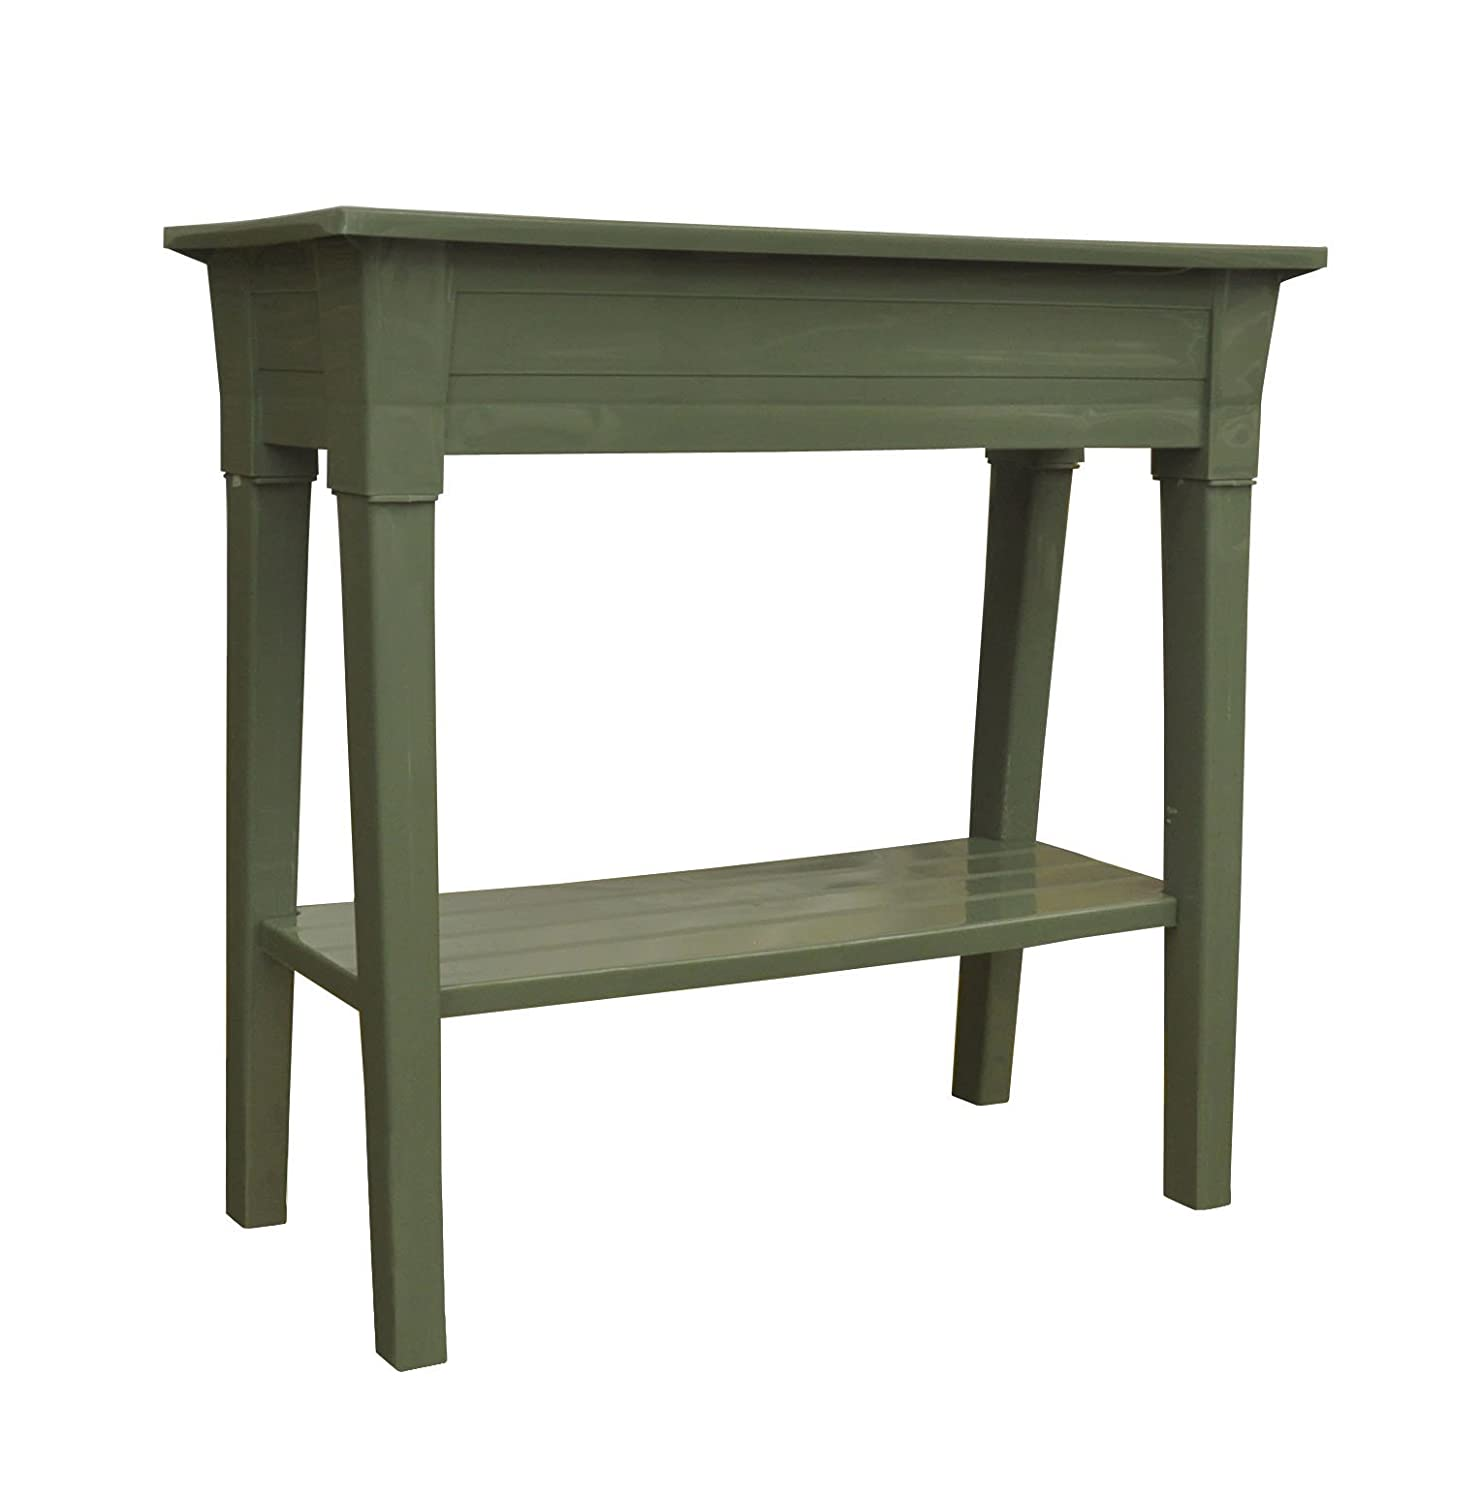 Adams Manufacturing 9303-01-3700 36-Inch Deluxe Garden Planter, Sage Green - Planters Amazon.com